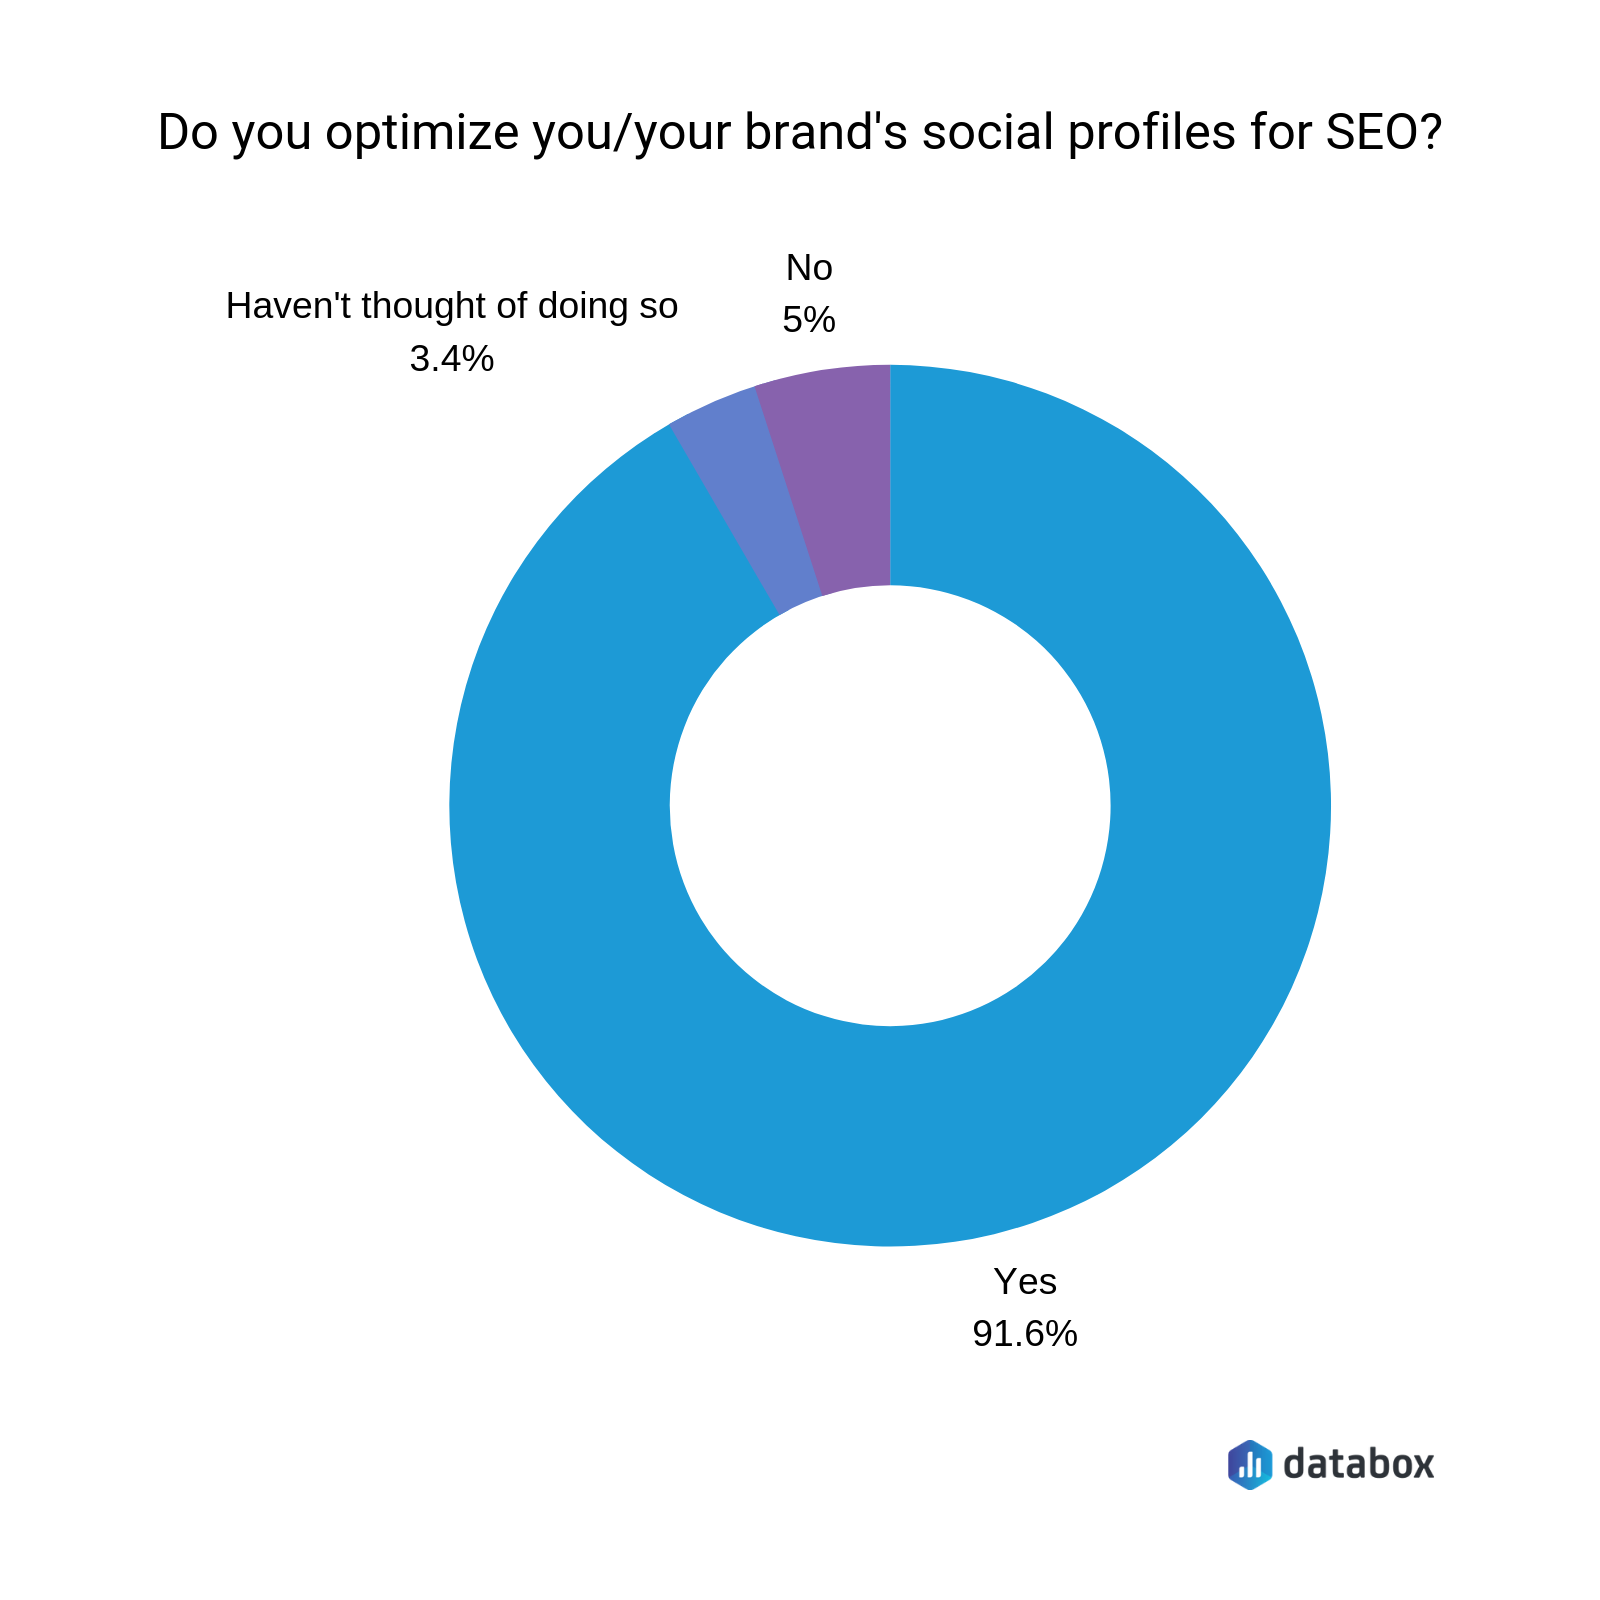 do you optimize your brand's social profiles for SEO?